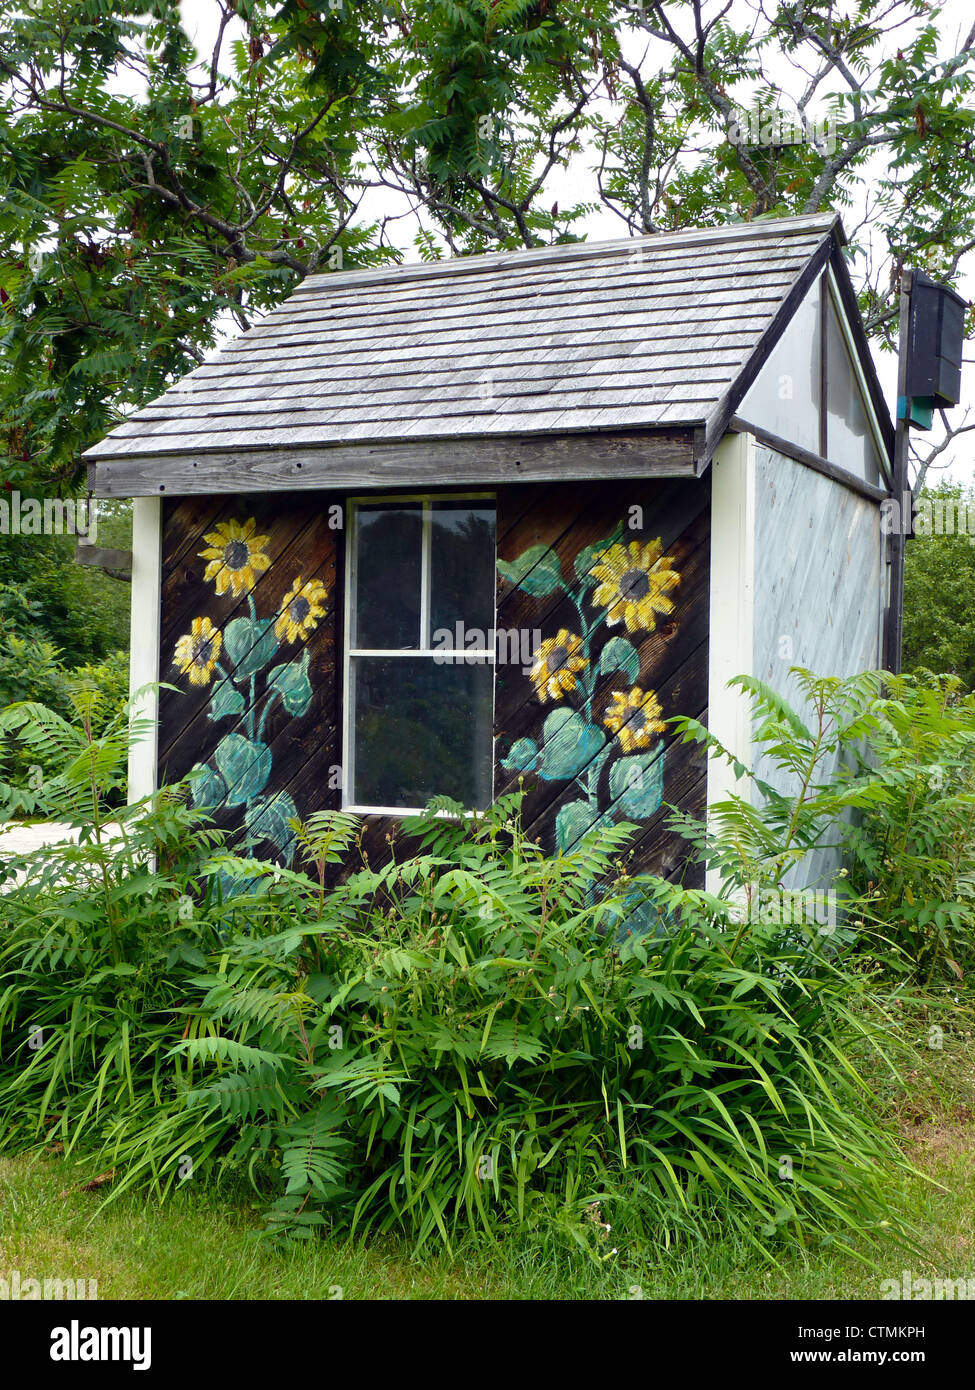 Garden Sheds Painted painted garden shed with sunflowers and birdbox in community